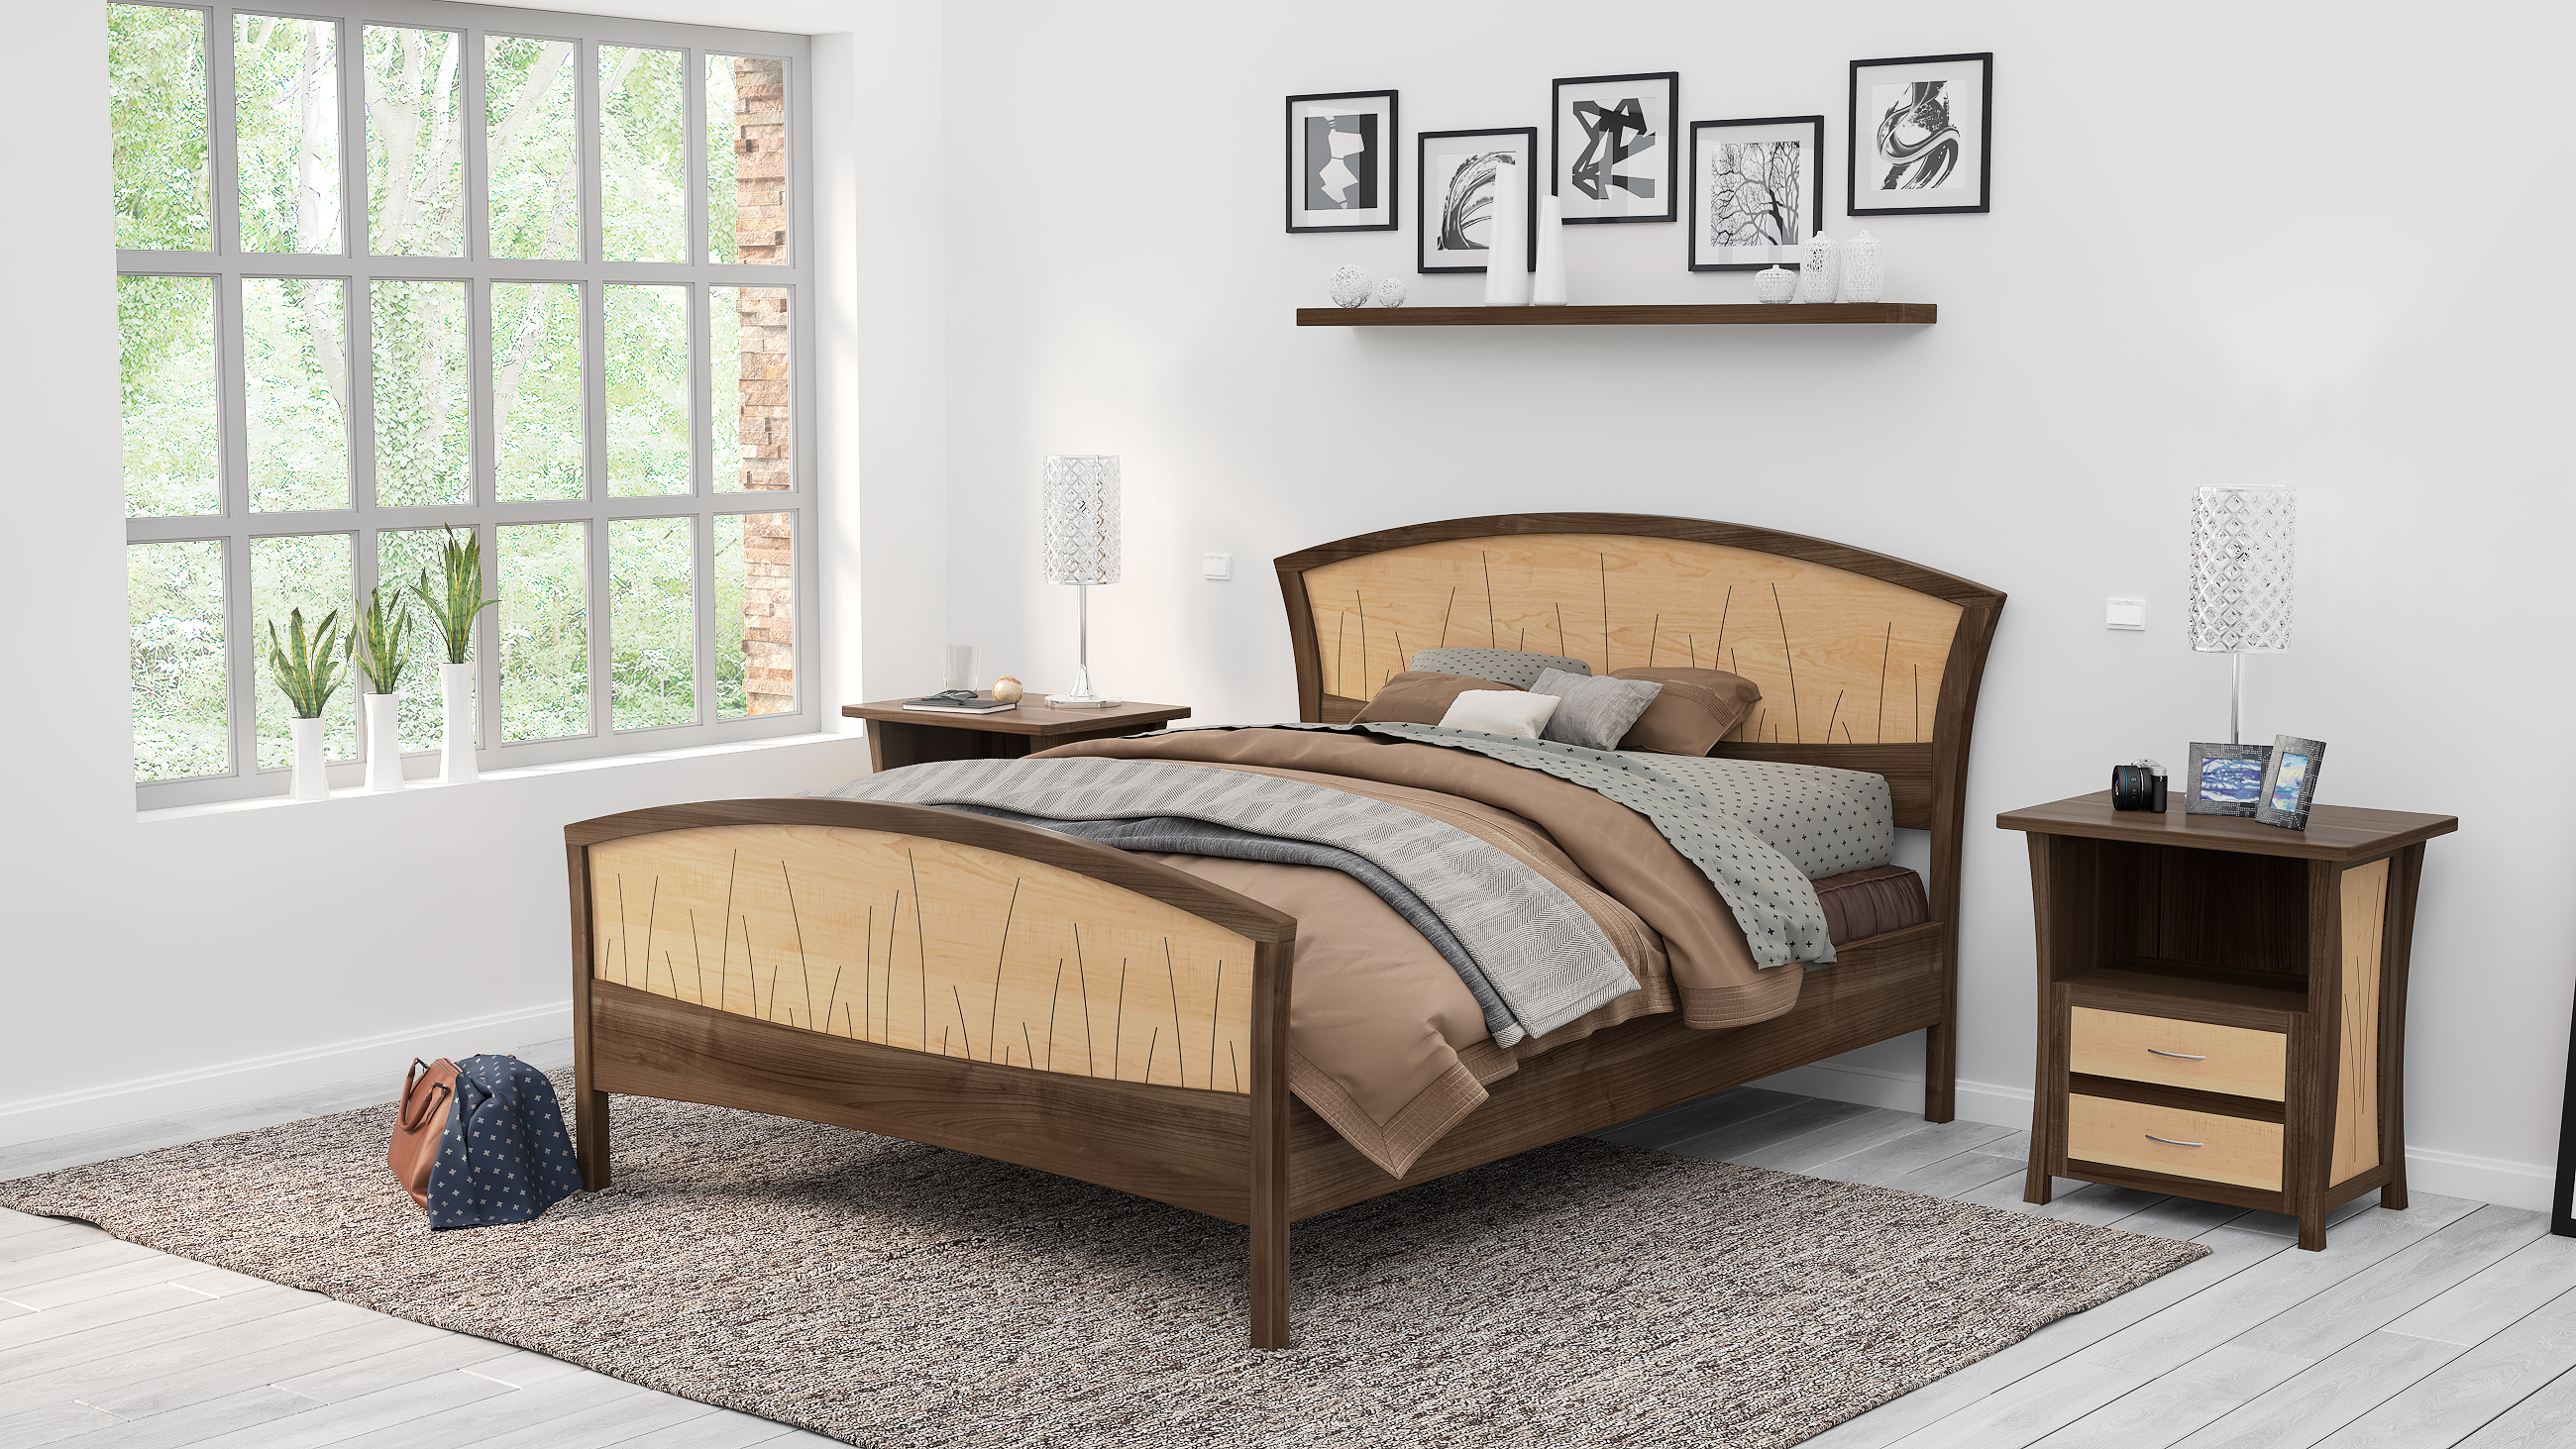 Hand Made Modern Bed Frame Walnut Headboard Wood Bed King Size Bed Queen Art Deco By Nathan Hunter Design Custommade Com